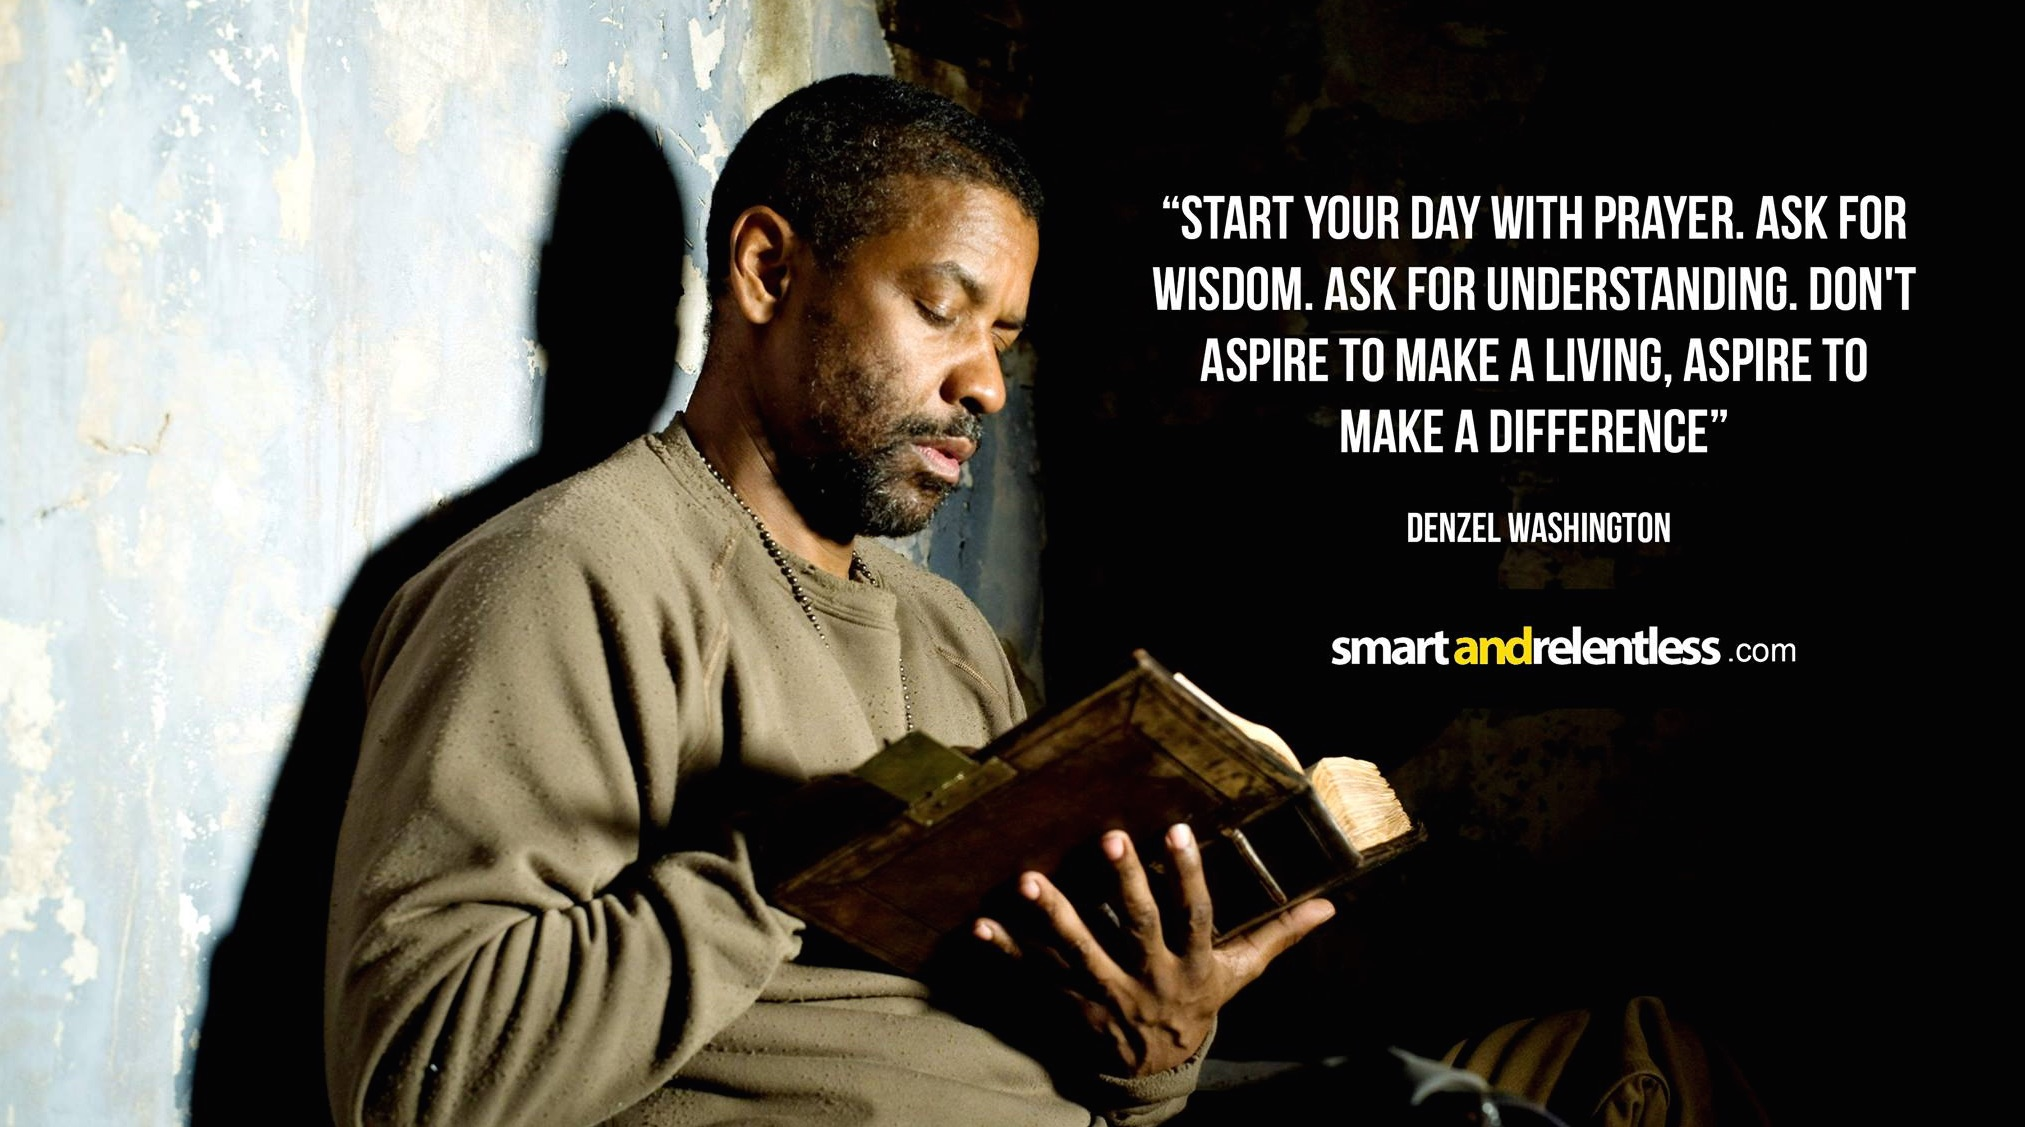 Denzel Washington Quotes 30 Inspirational Denzel Washington Quotes  The Power Of Faith And